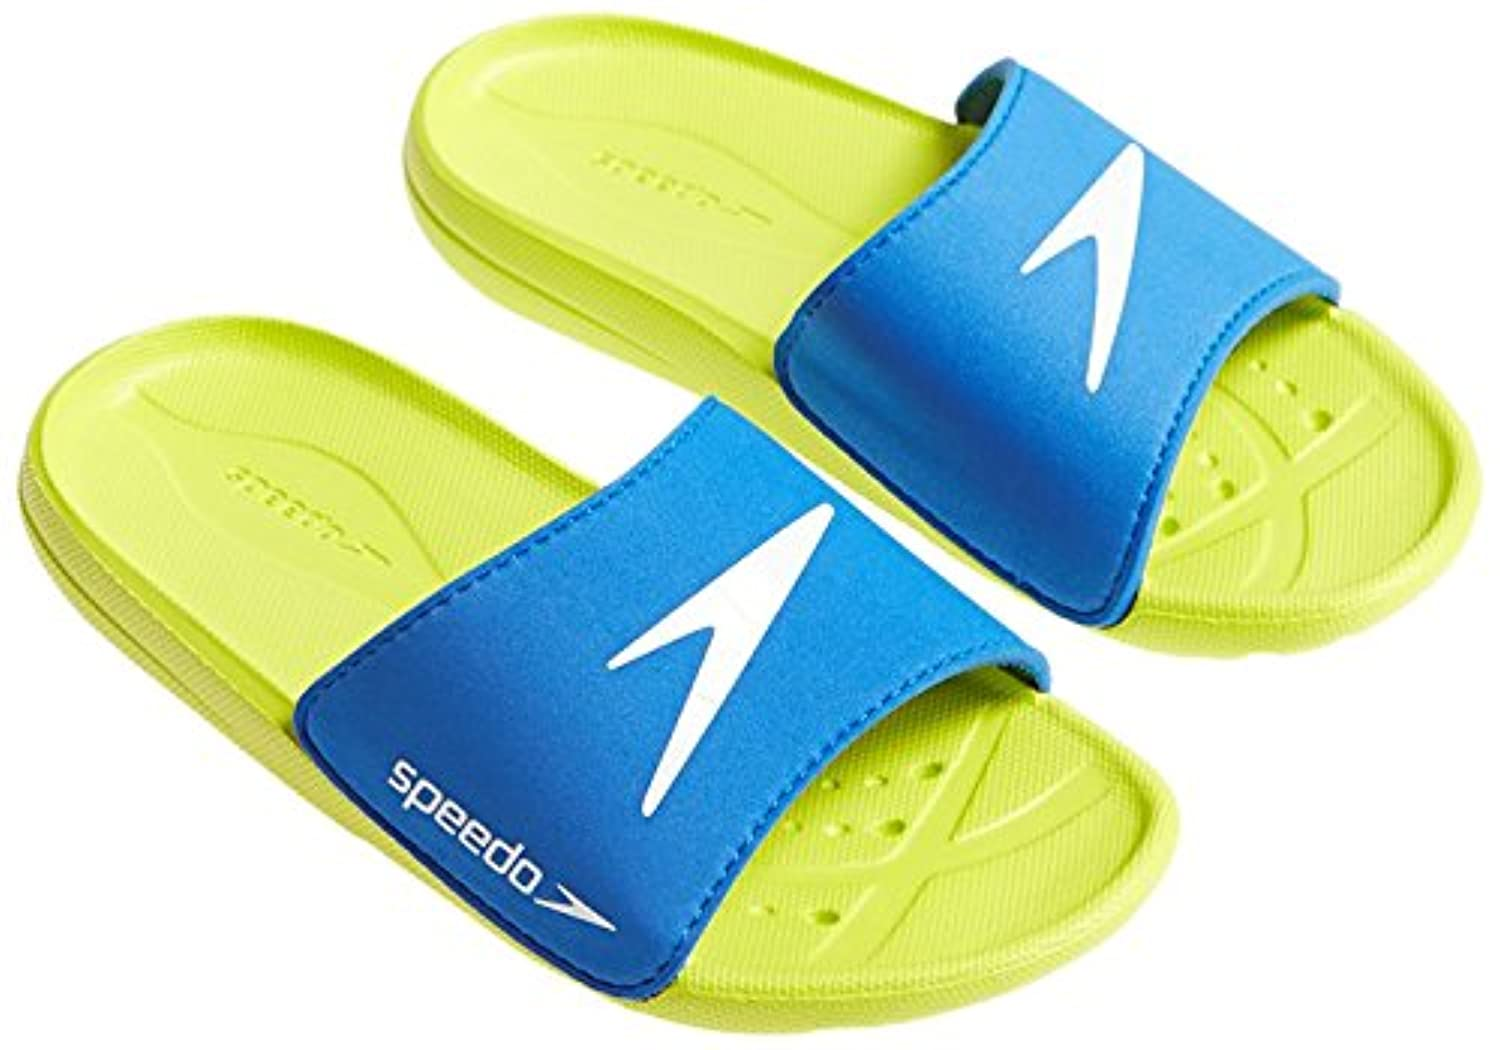 Speedo Atami Core Slide (Box), Bath for Children and Boys Sandals, baby, Atami Core Sld Jm, Blue/Green/White, 1 UK (33 IT)